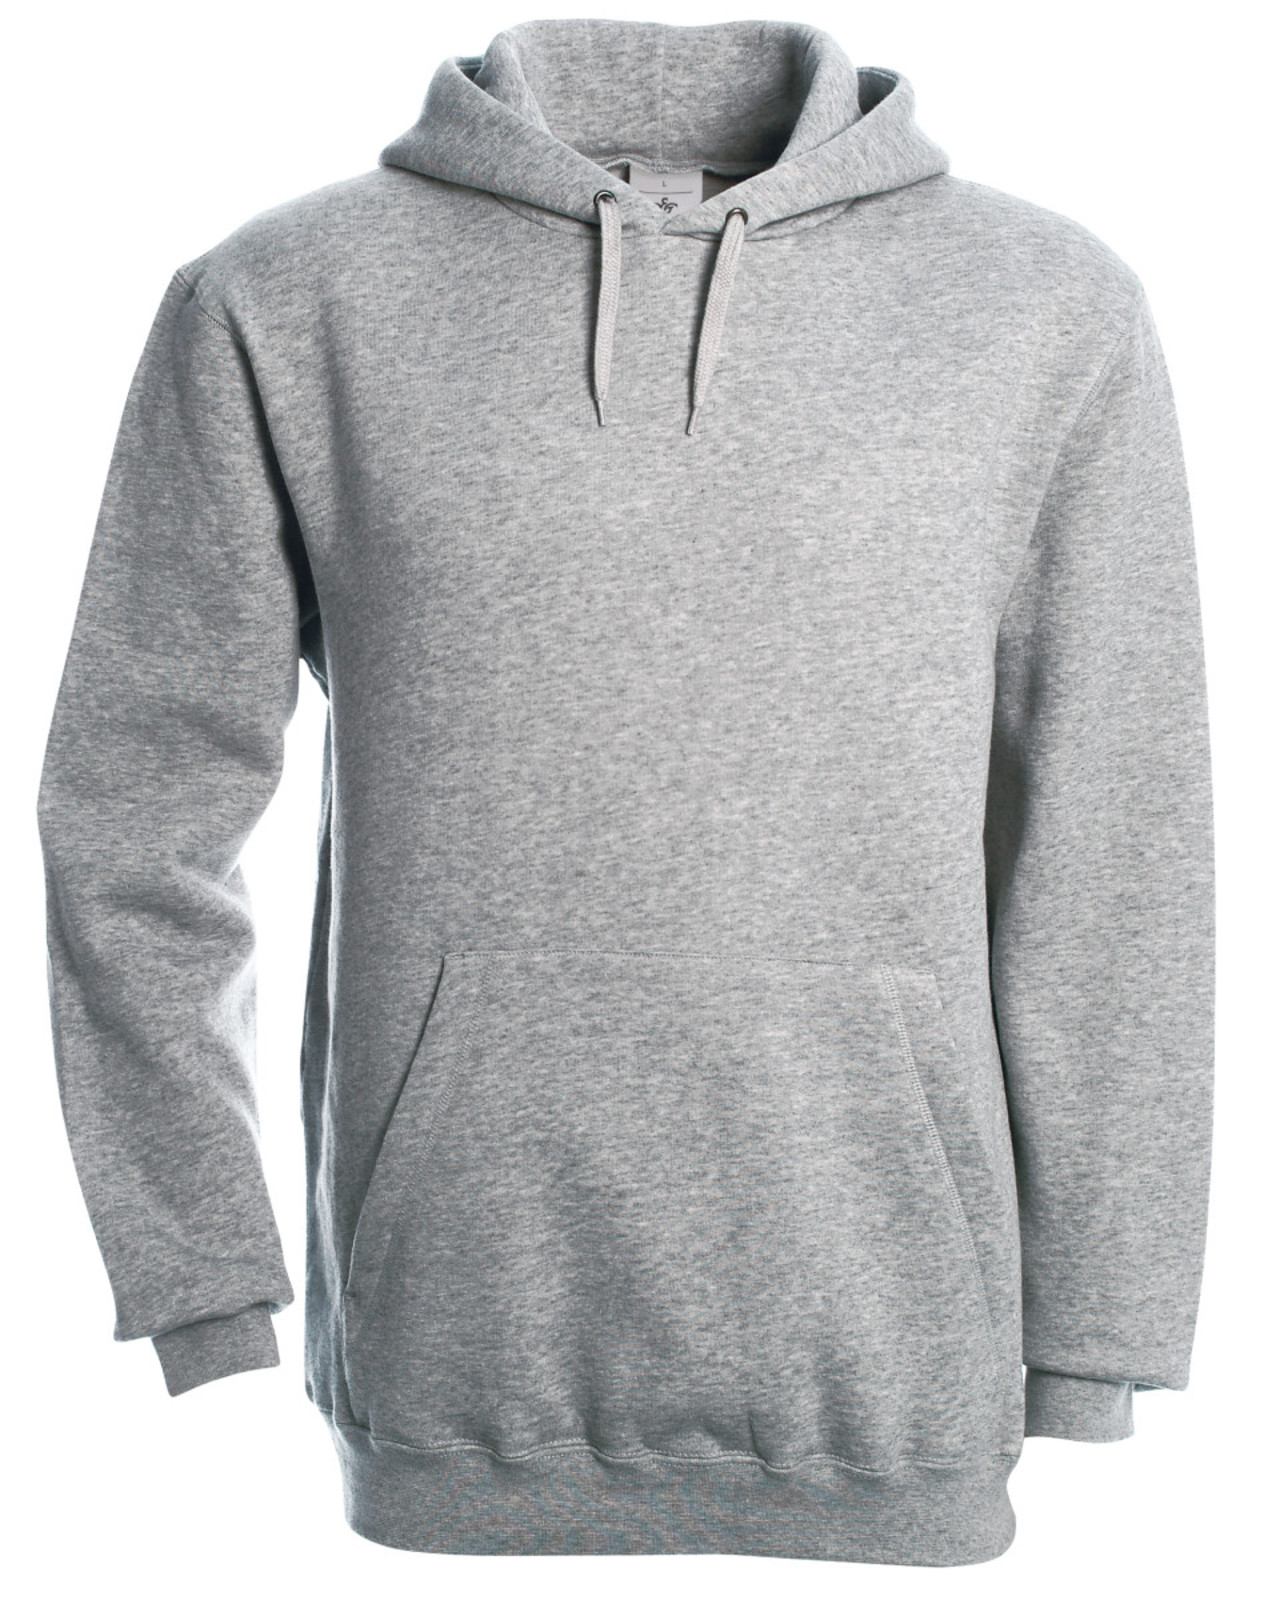 Blank Crewneck Sweatshirts for Every Style and Budget Browse our line of wholesale crewneck sweatshirts at prices starting below $5 each. We carry many styles including poly cotton blends, ringspun, performance polyester, and garment dyed.